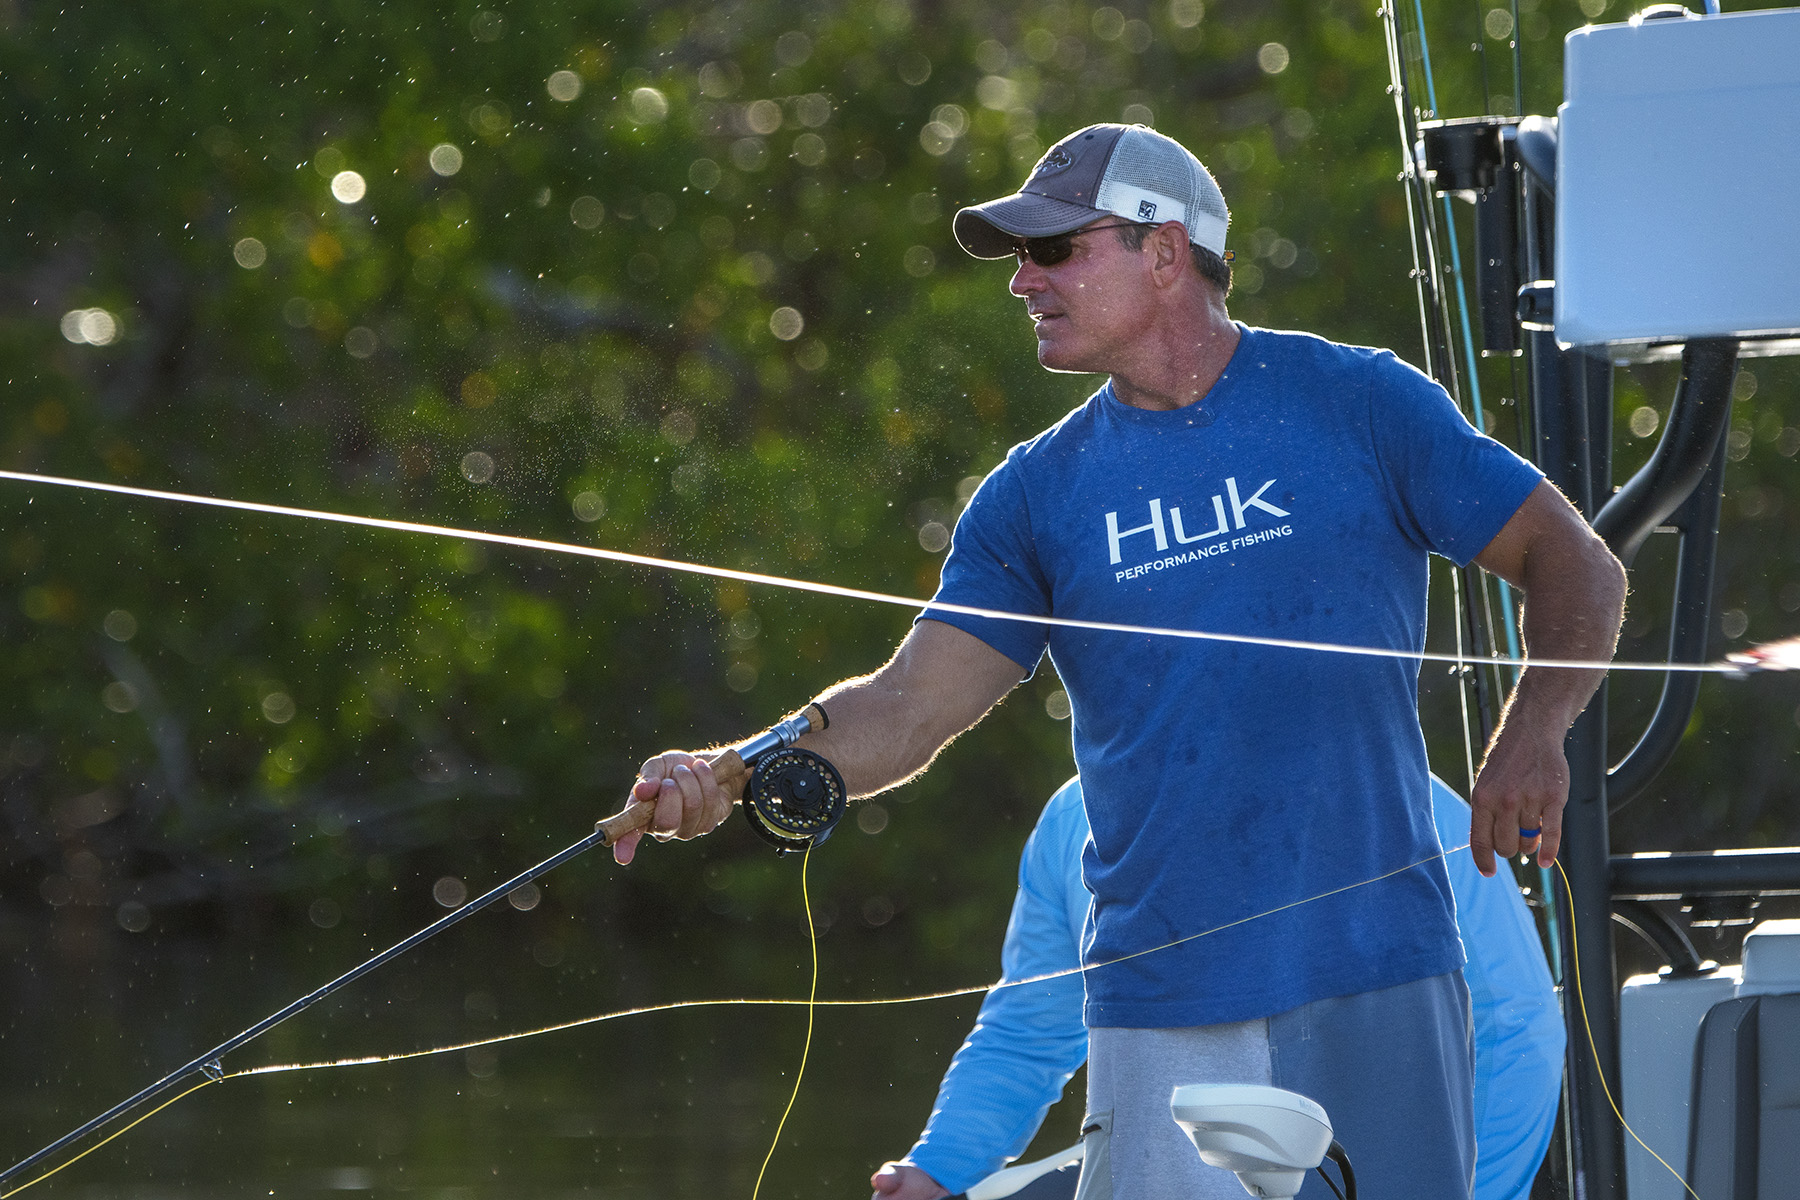 tom-rowland-flyfishing-for-tarpon-in-the-everglades-on-saltwater-experience-streaming-on-waypoint-tv